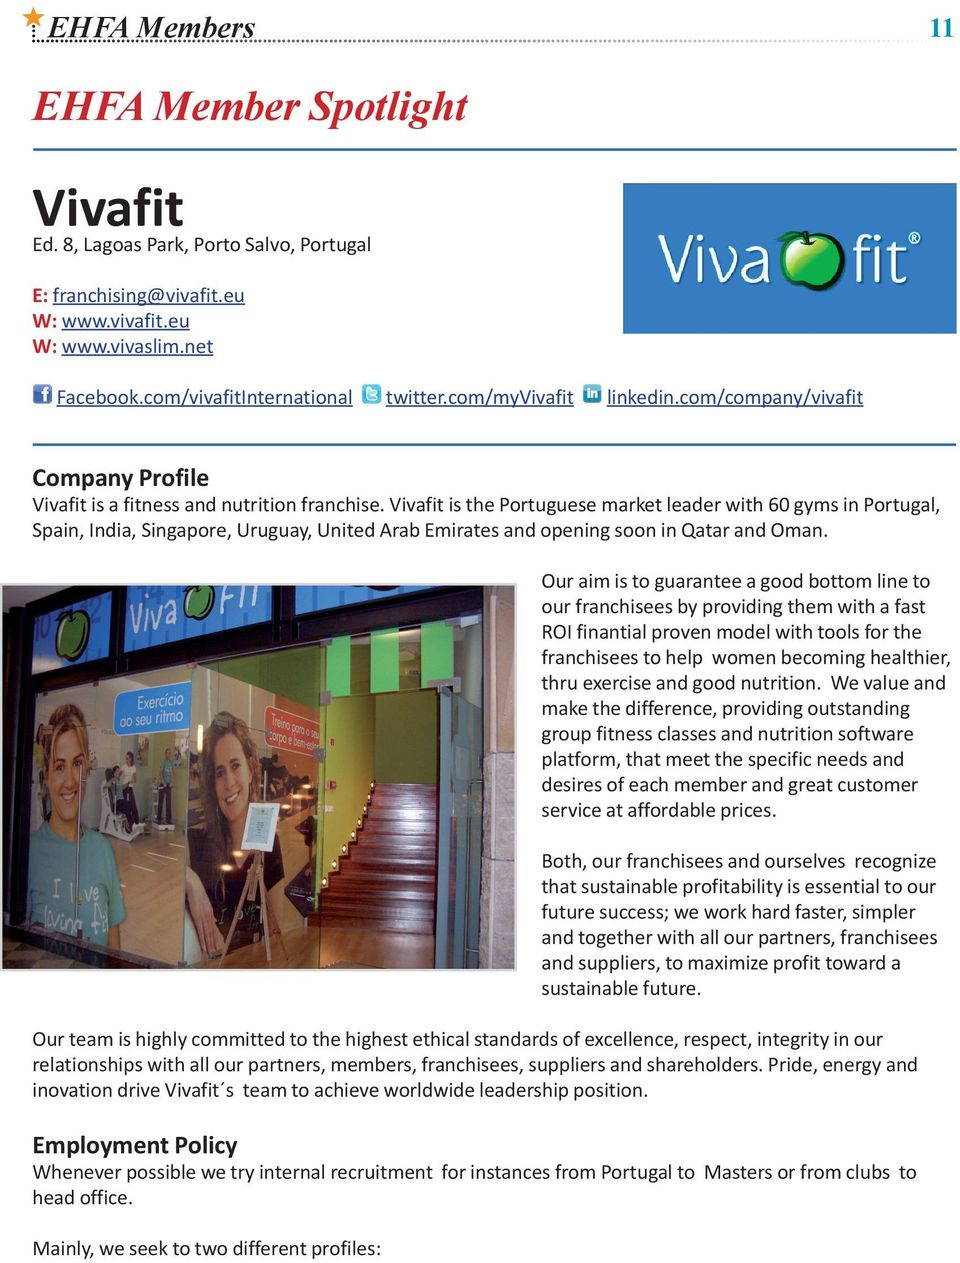 Vivafit is the Portuguese market leader with 60 gyms in Portugal, Spain, India, Singapore, Uruguay, United Arab Emirates and opening soon in Qatar and Oman.